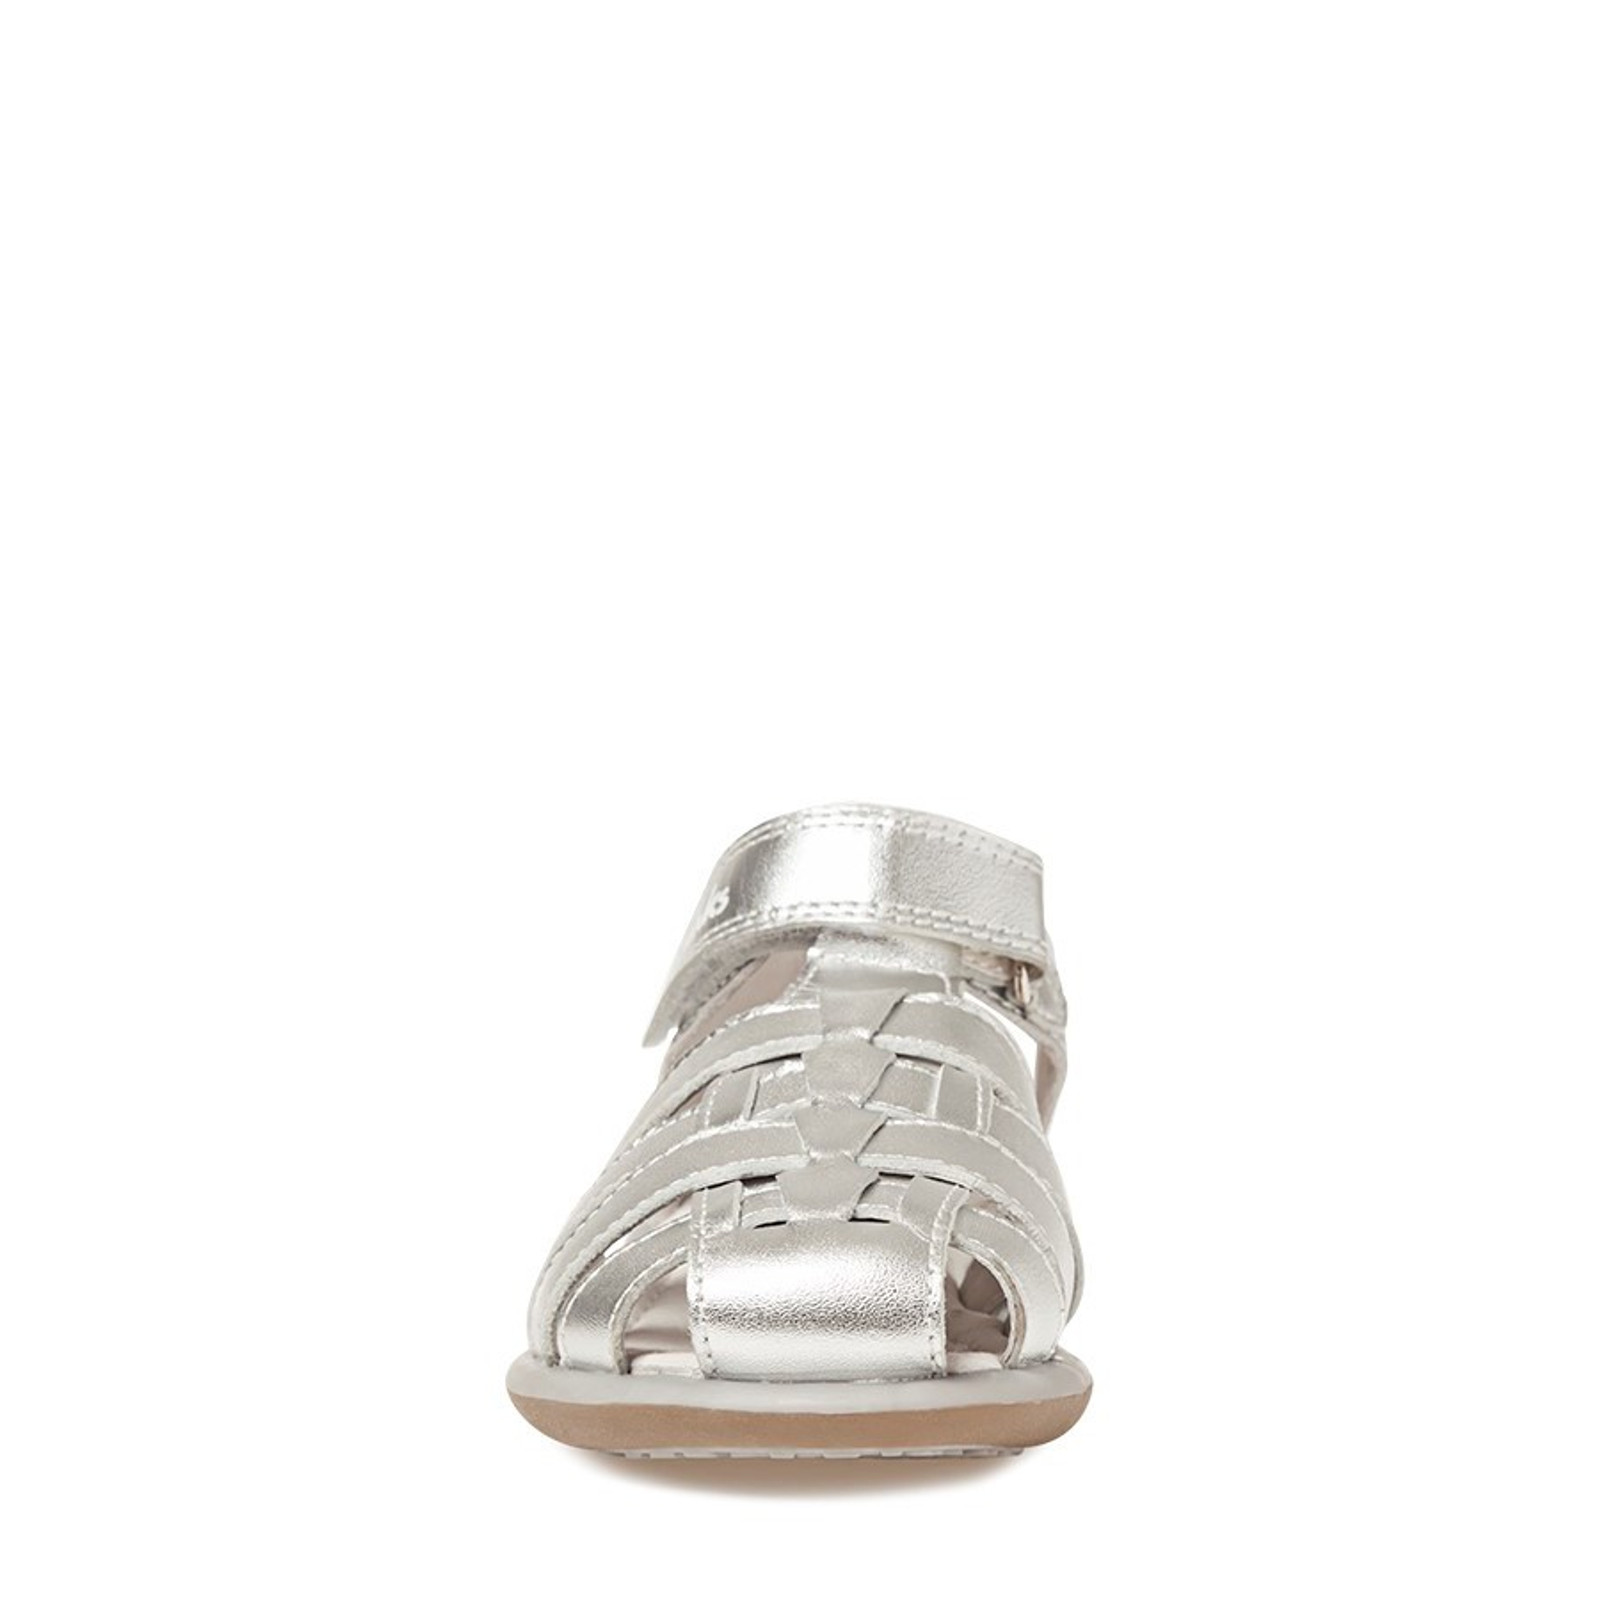 Clarks Girls PIPER Silver